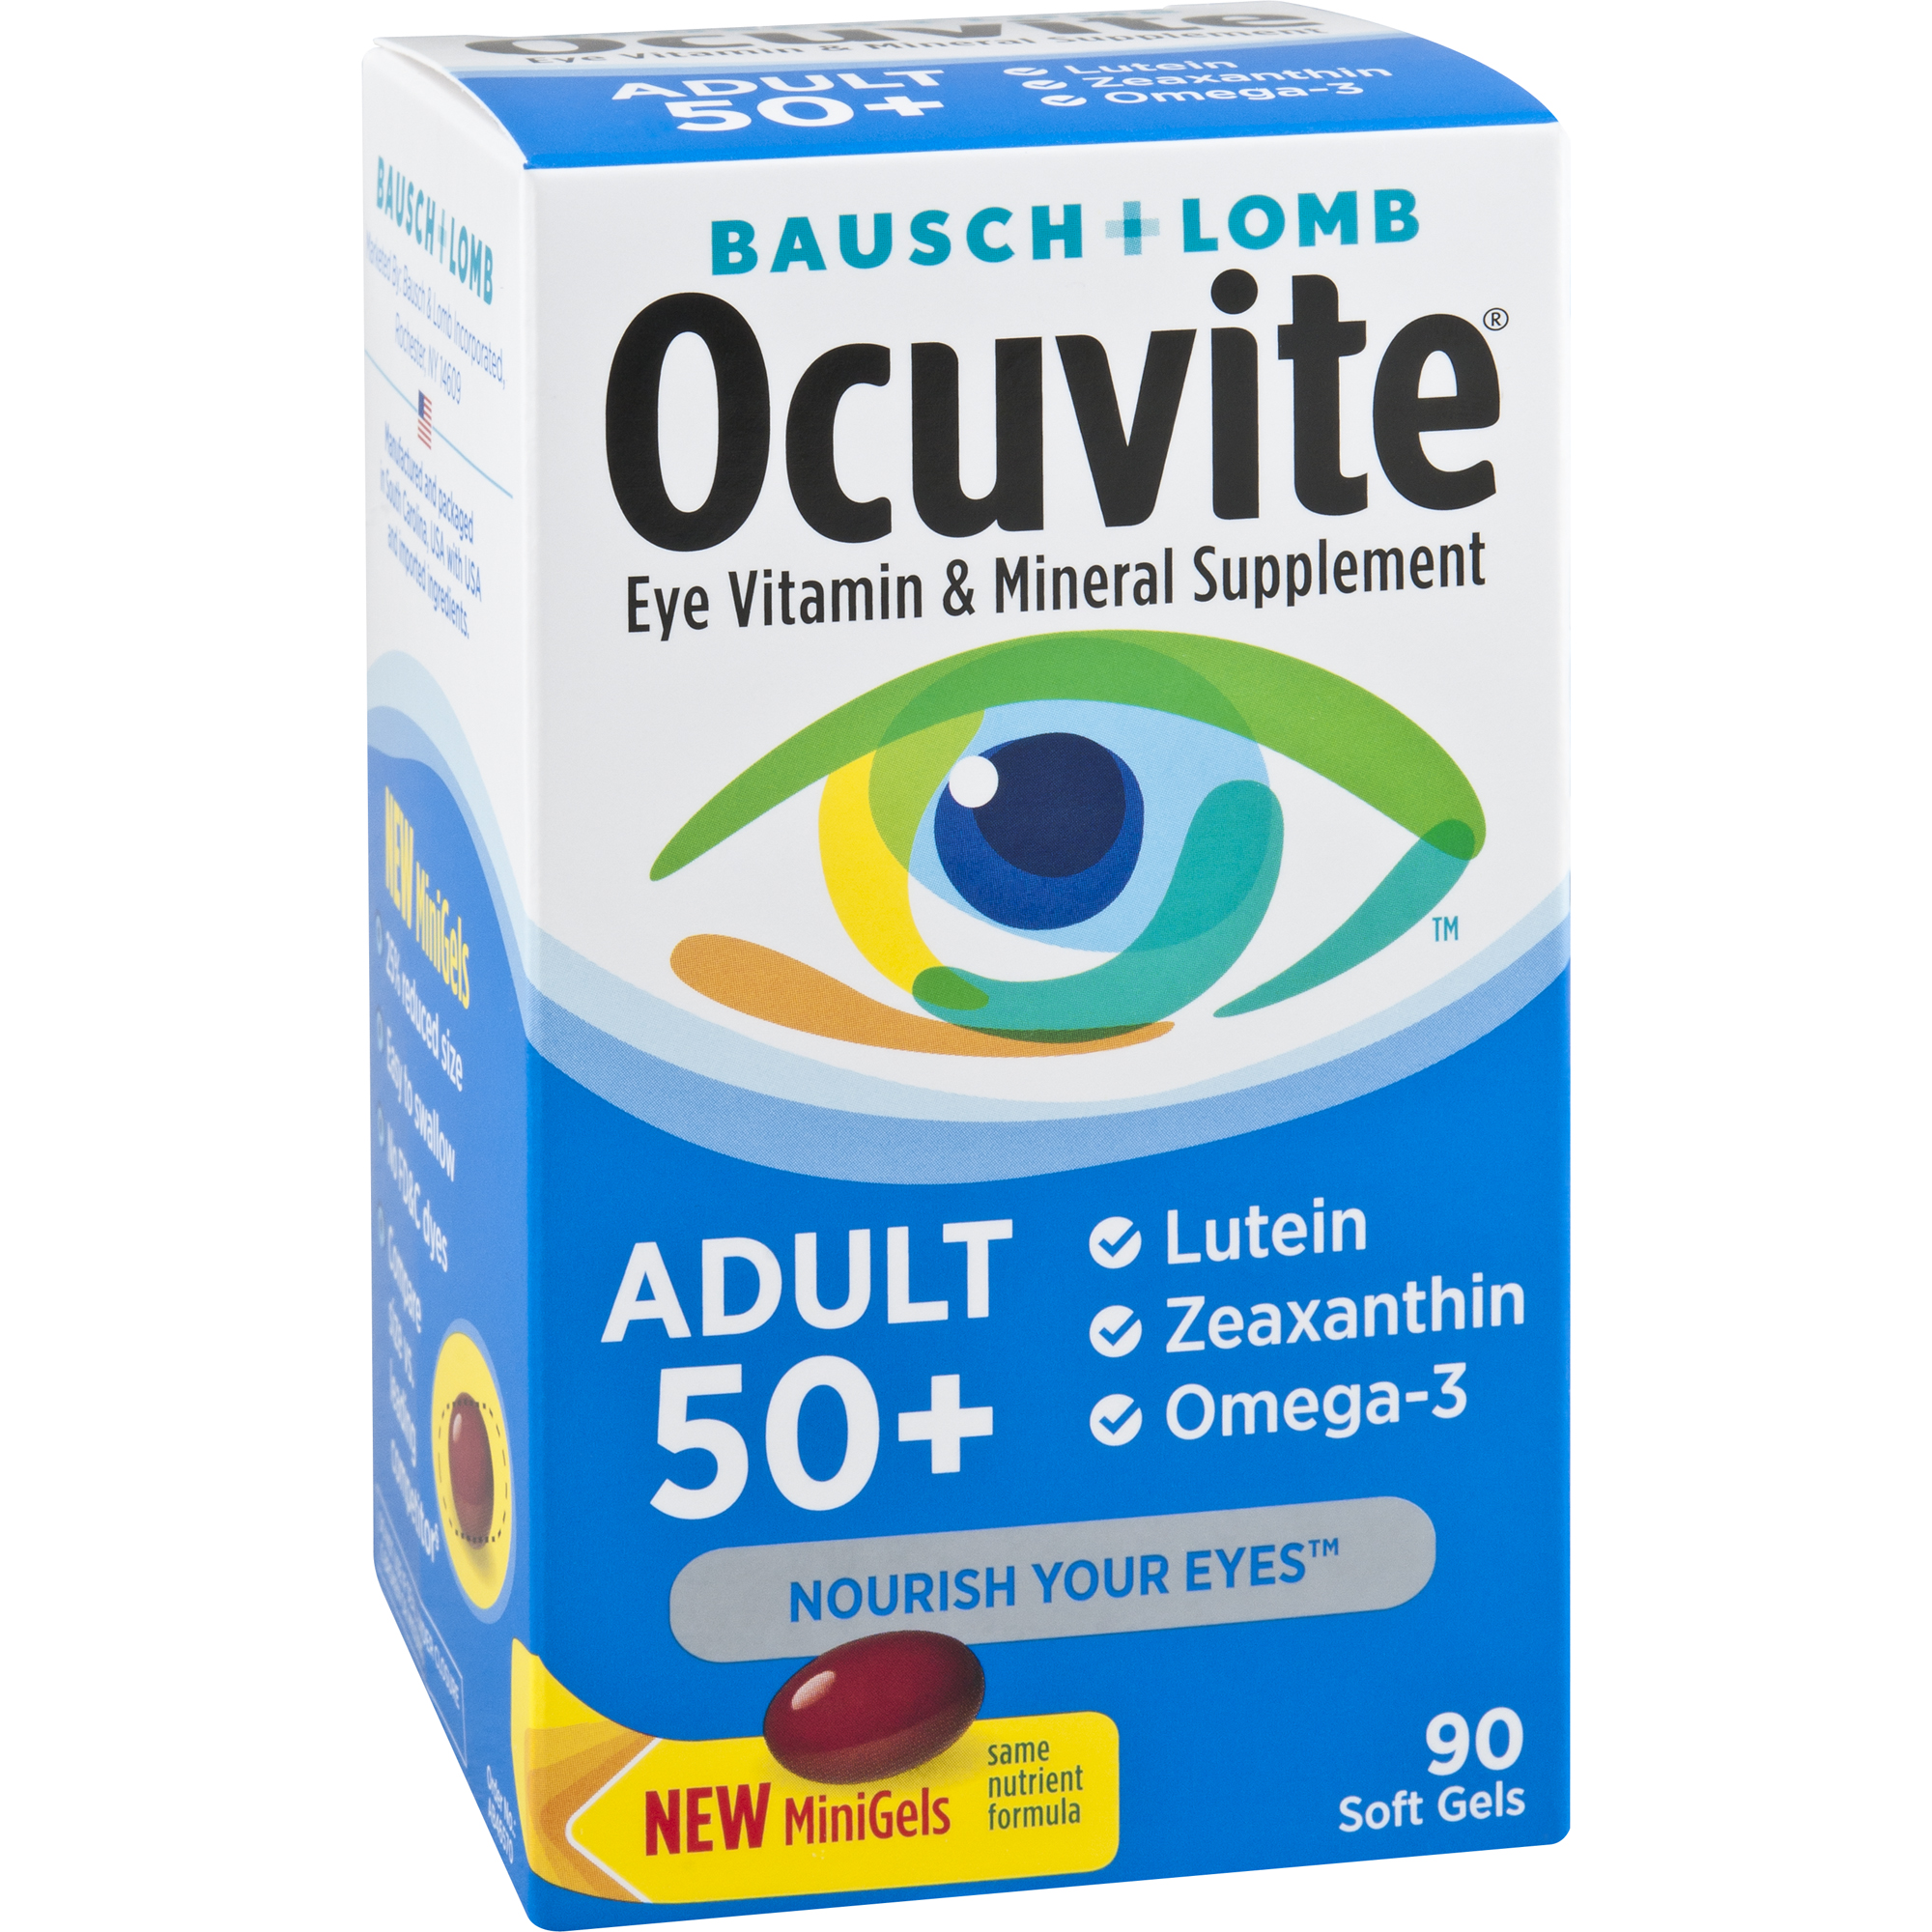 Bausch & Lomb Ocuvite Adult 50+ Vitamin & Mineral Supplement Soft Gels, 90 Ct